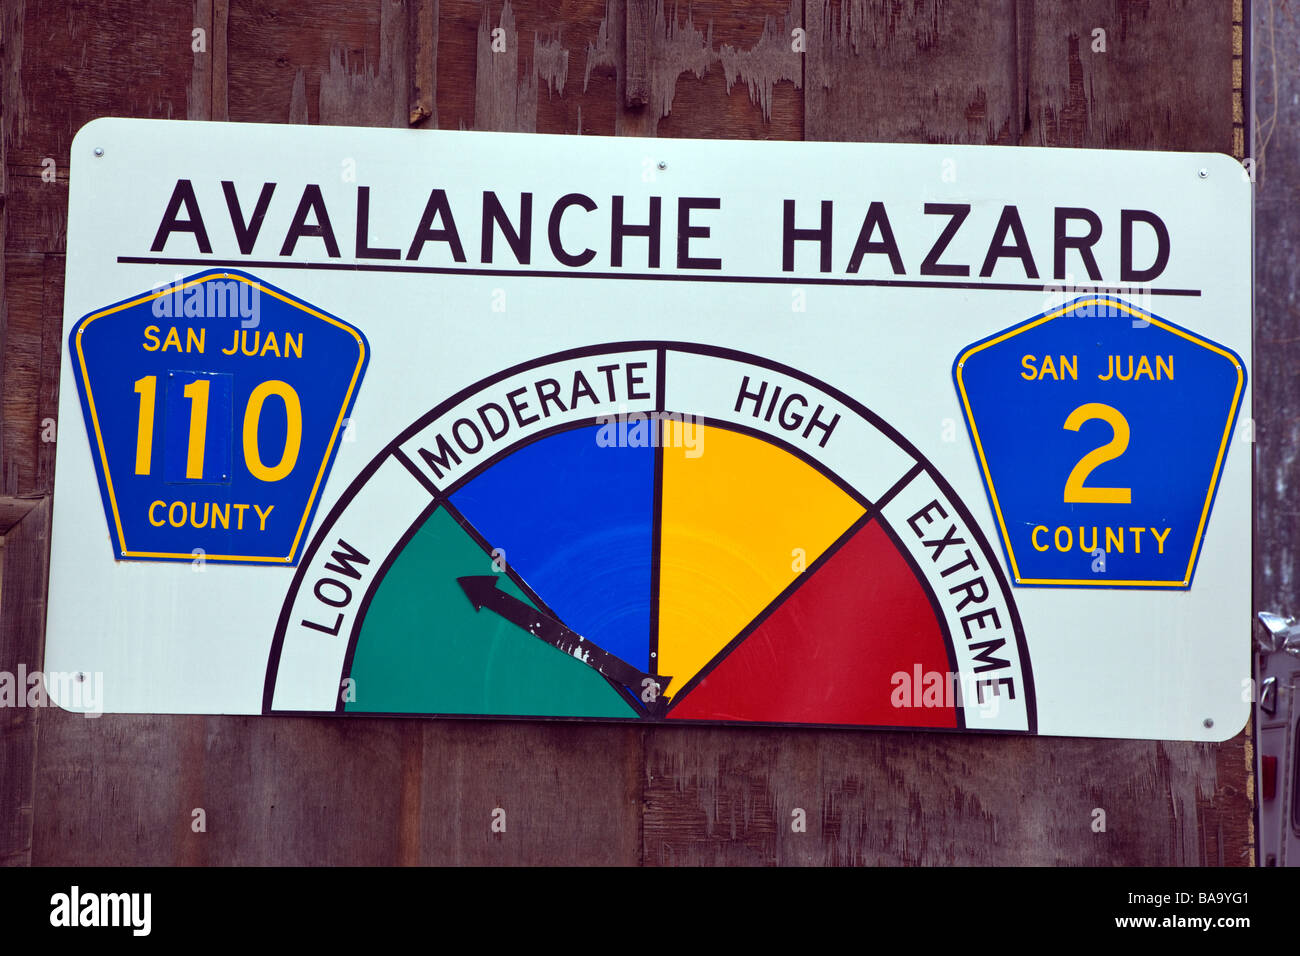 Avalanche Hazard warning sign posted on a building in historic Silverton Colorado USA - Stock Image